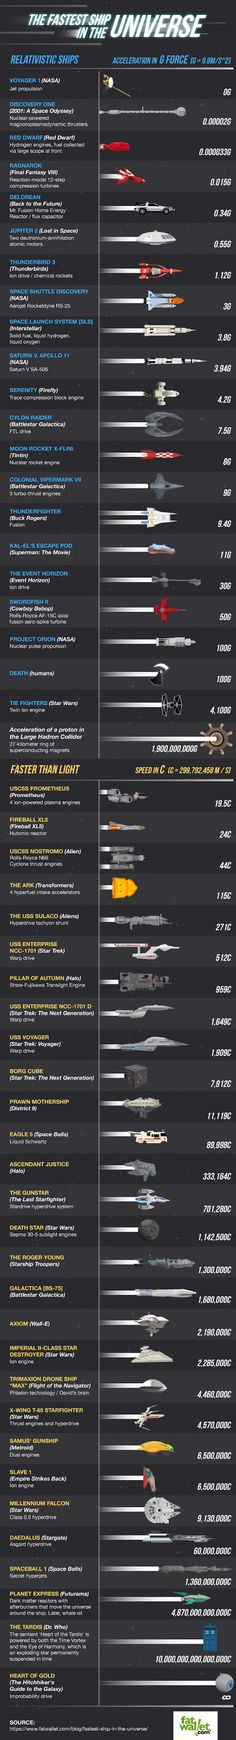 Fastest ships in sci-fi history! #infographic #space #starwars